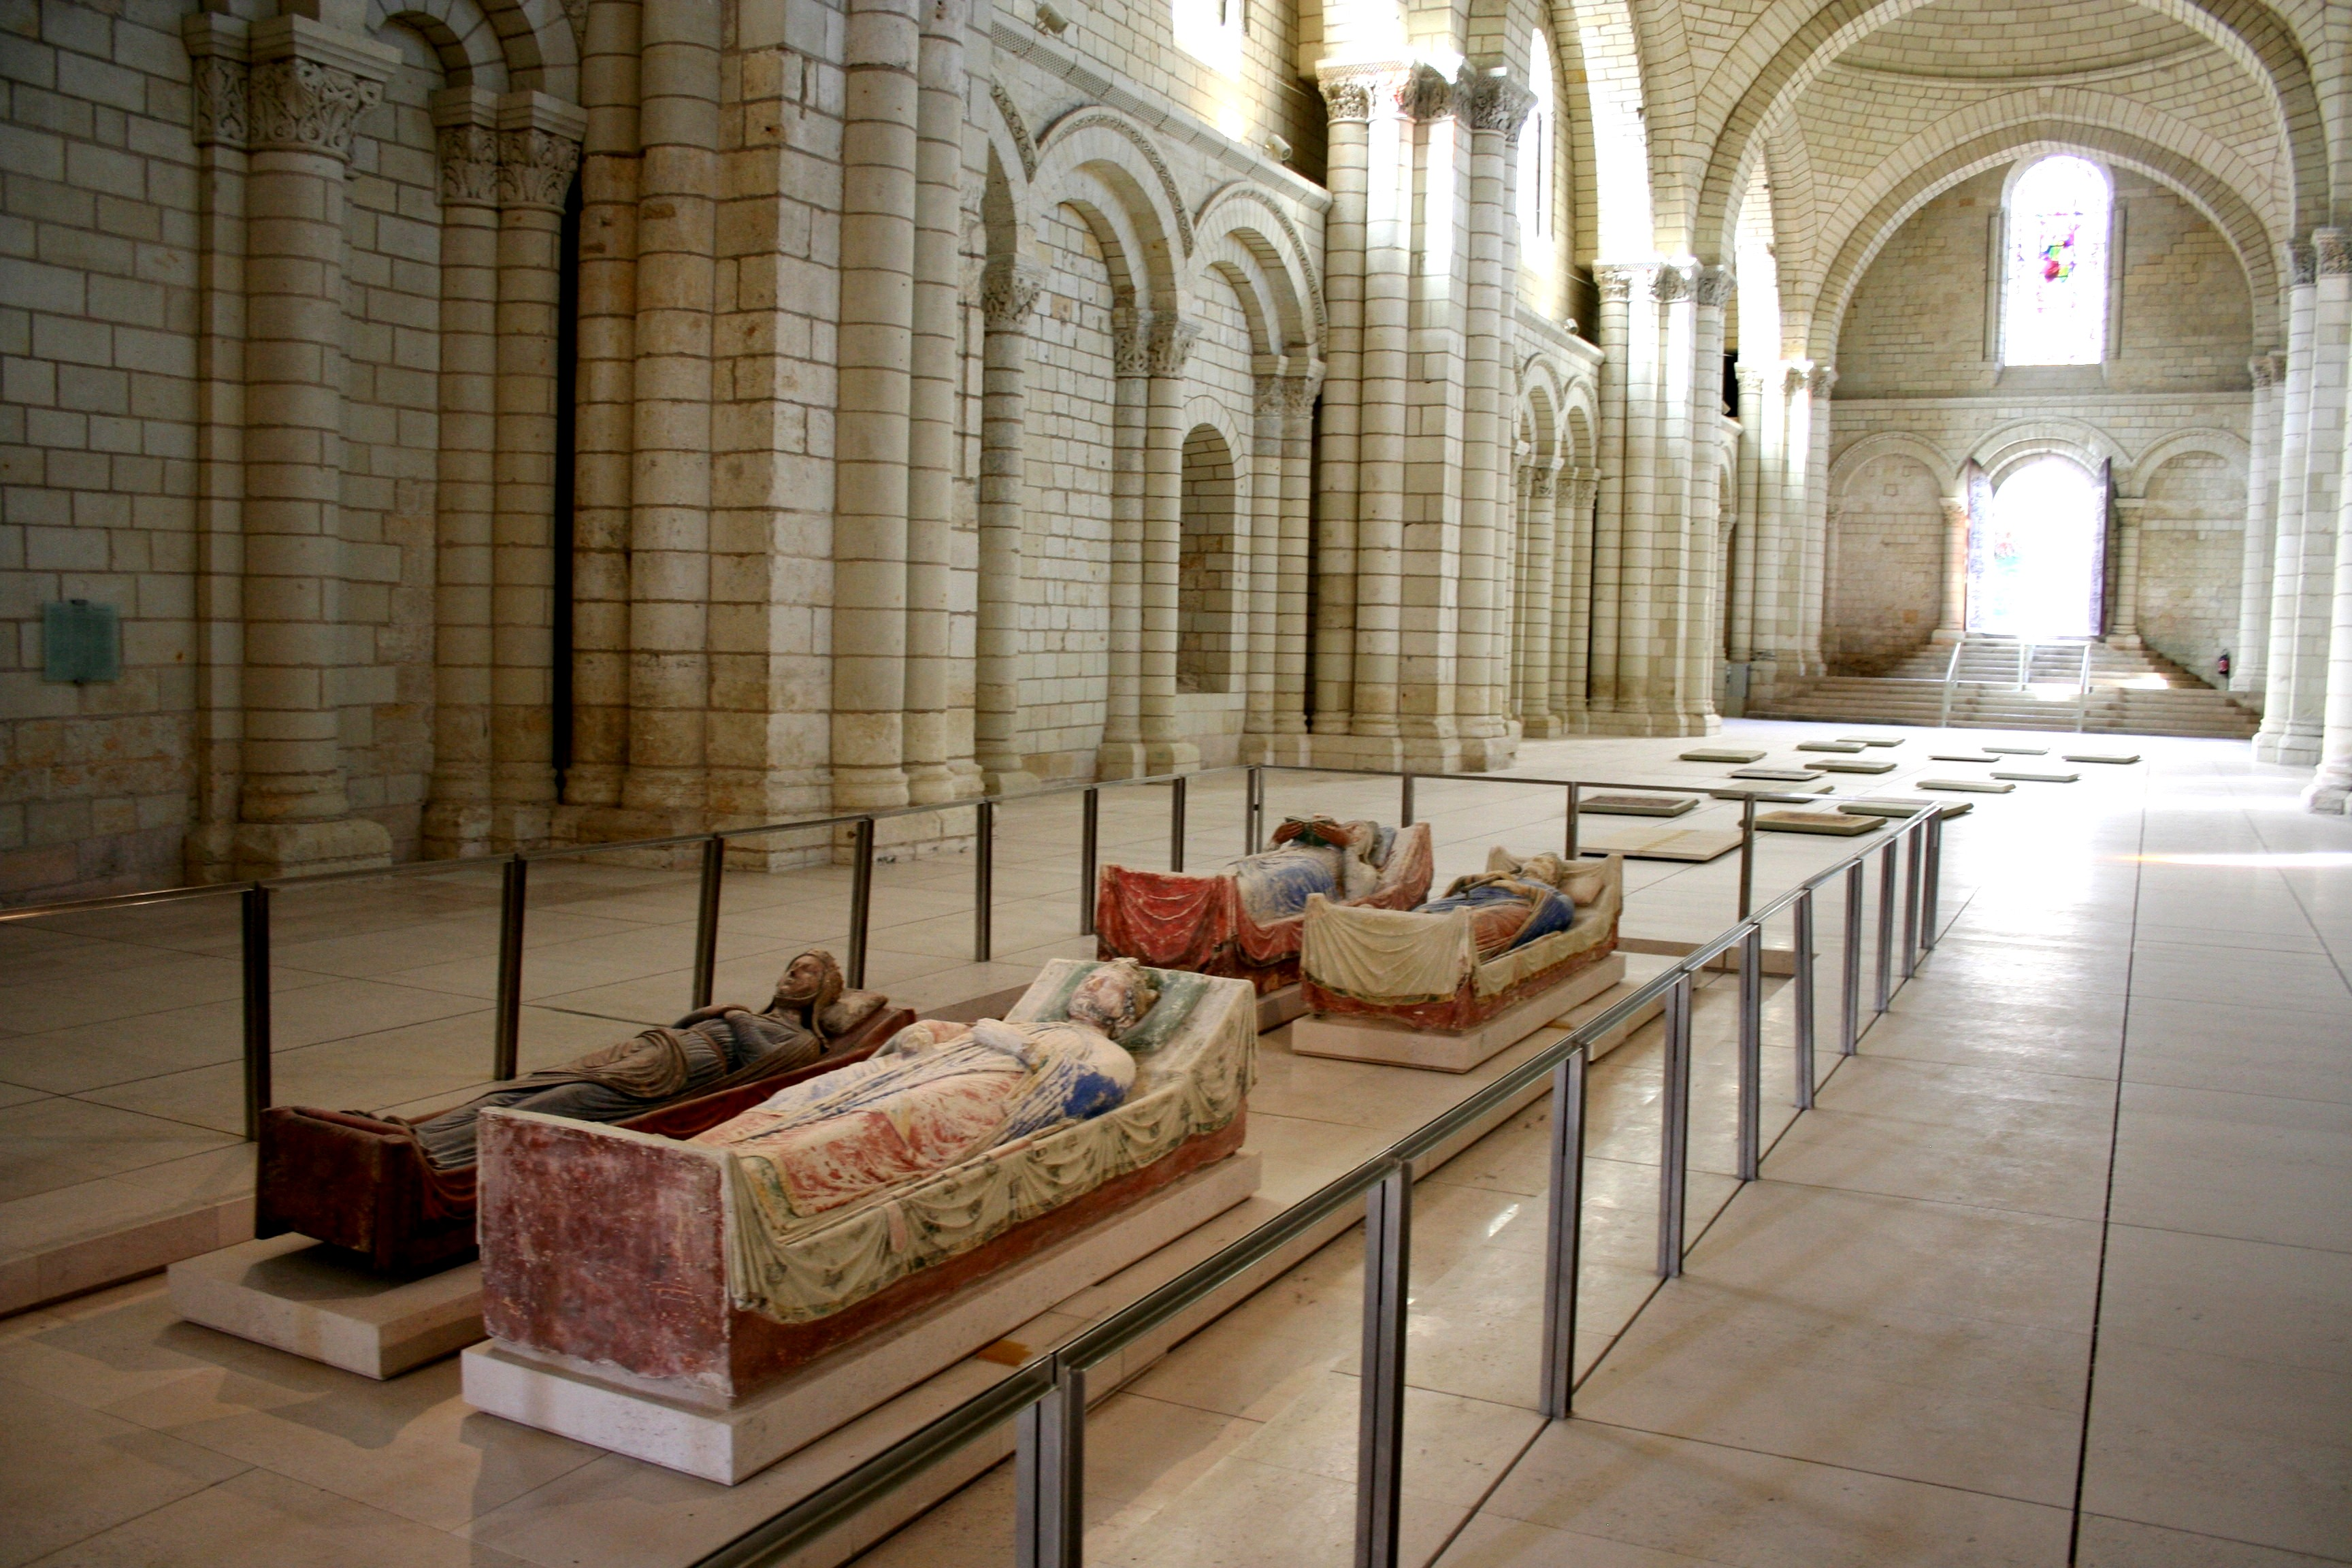 Plantagenet Headstones in Fontevraud